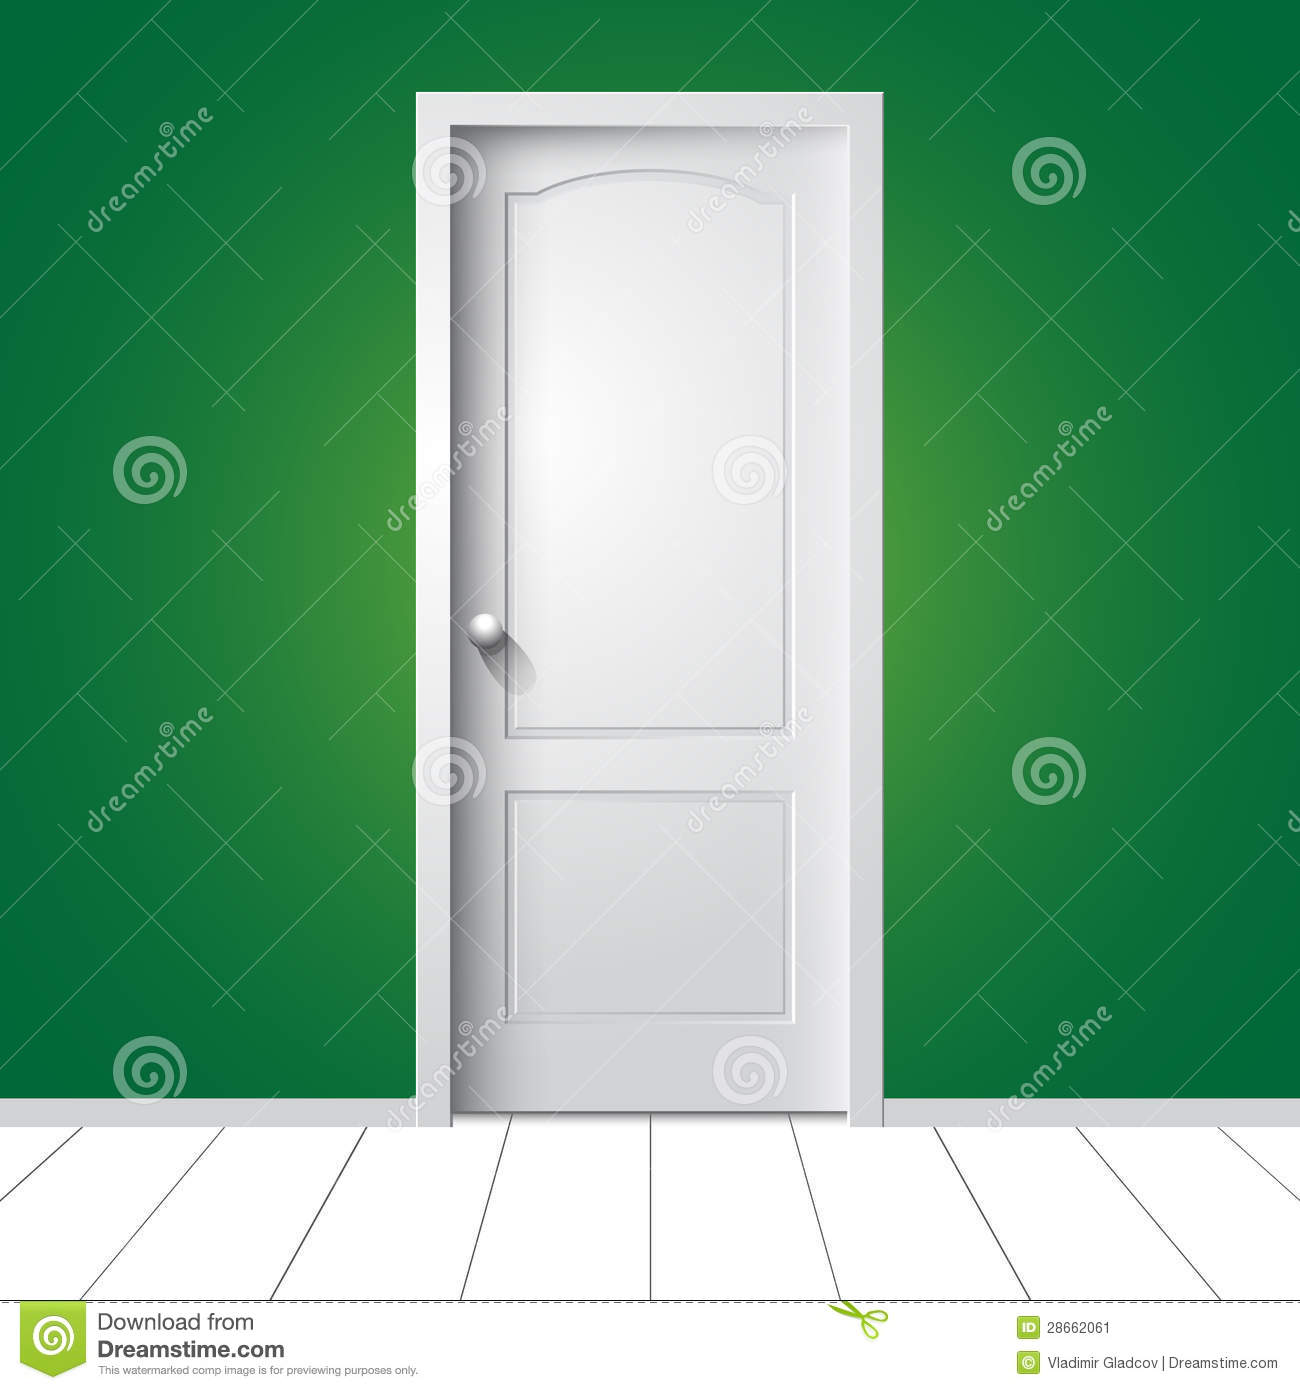 Royalty-Free Stock Photo & Vector white door stock vector. Illustration of background - 28662061